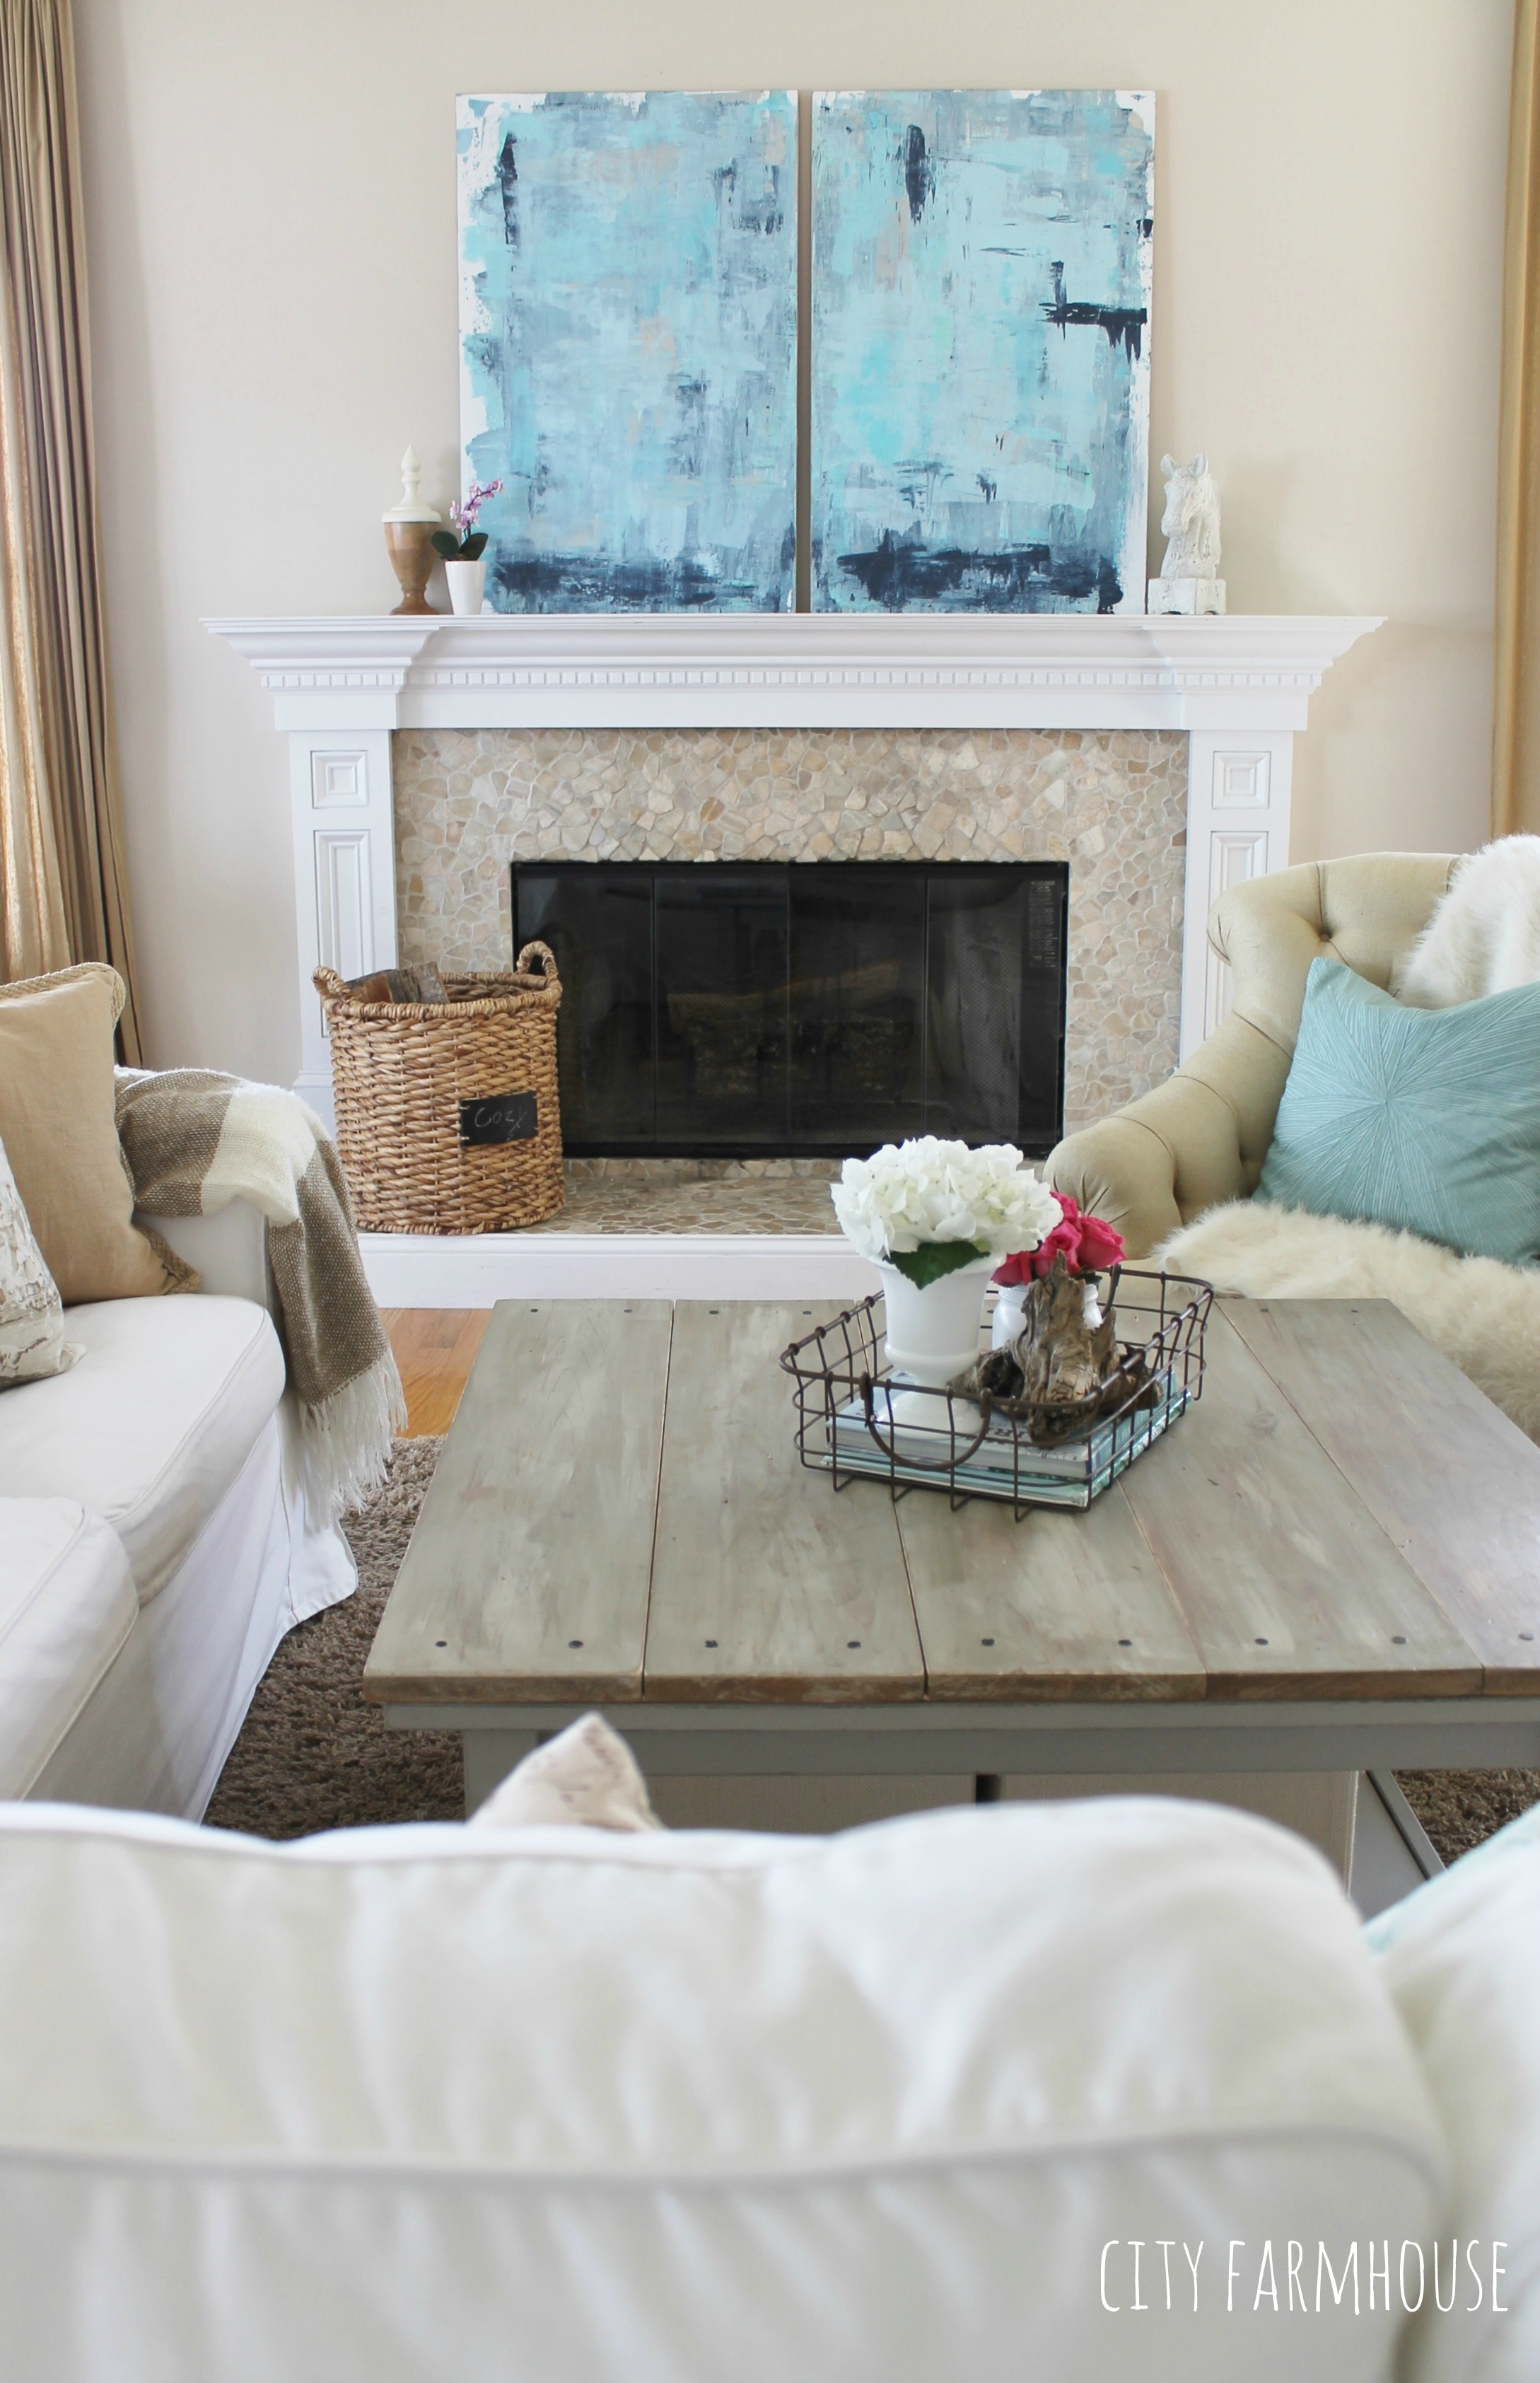 Diy Abstract Art A Coastal Look For Under $30 – City Farmhouse For Current Neutral Abstract Wall Art (View 8 of 20)